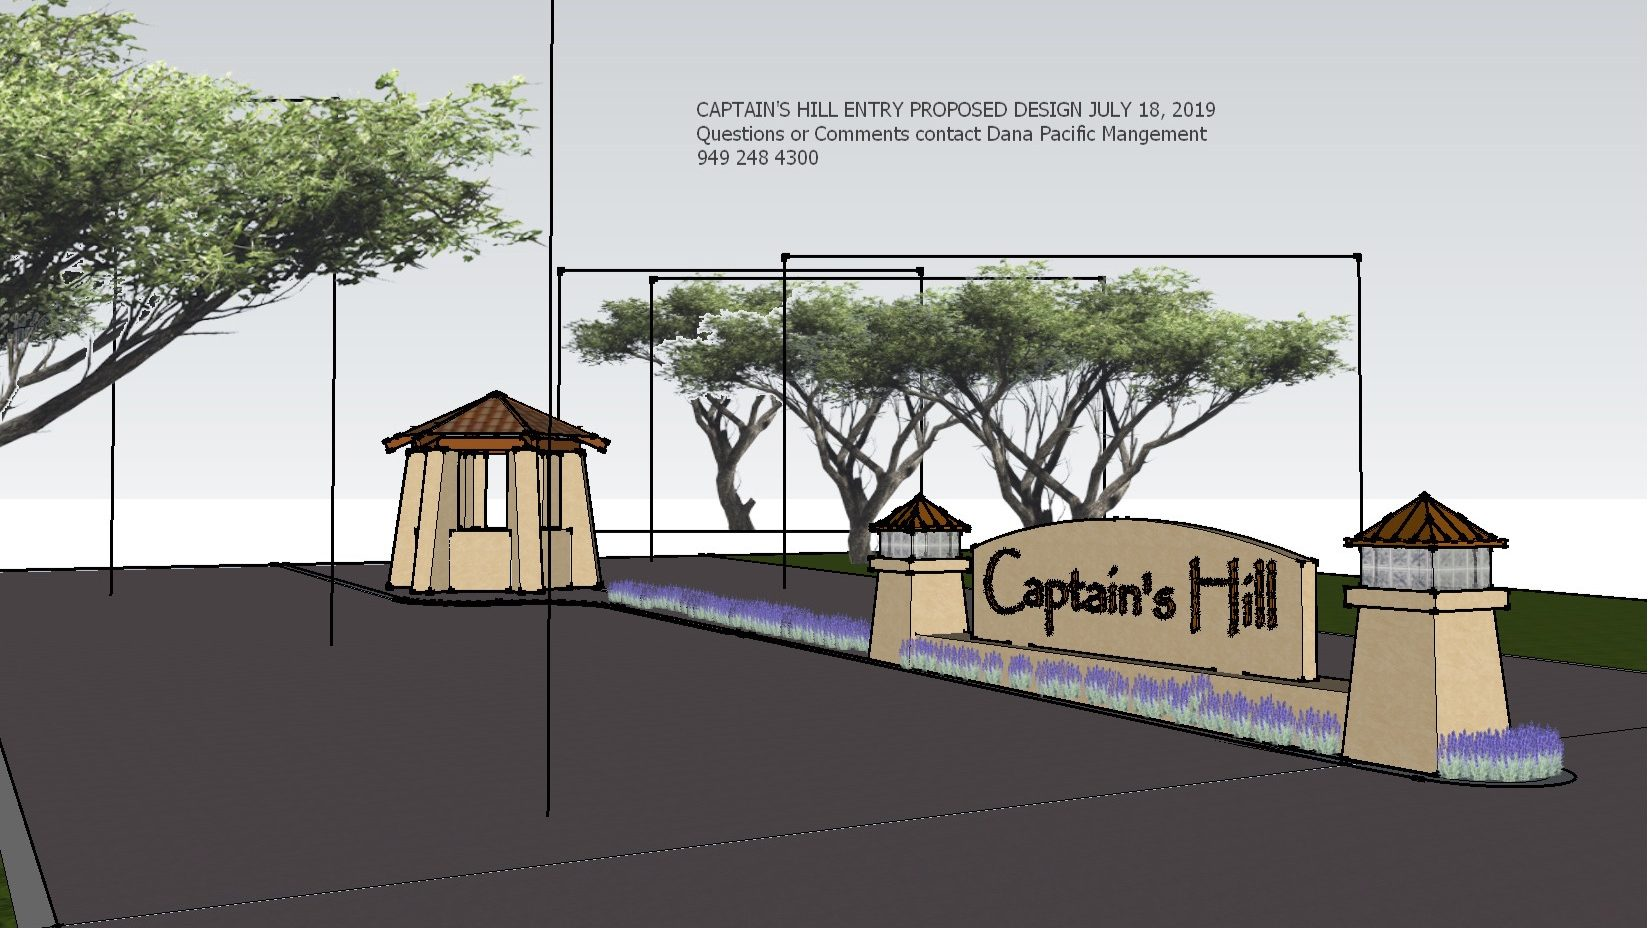 CAPTAIN'S HILL HOA